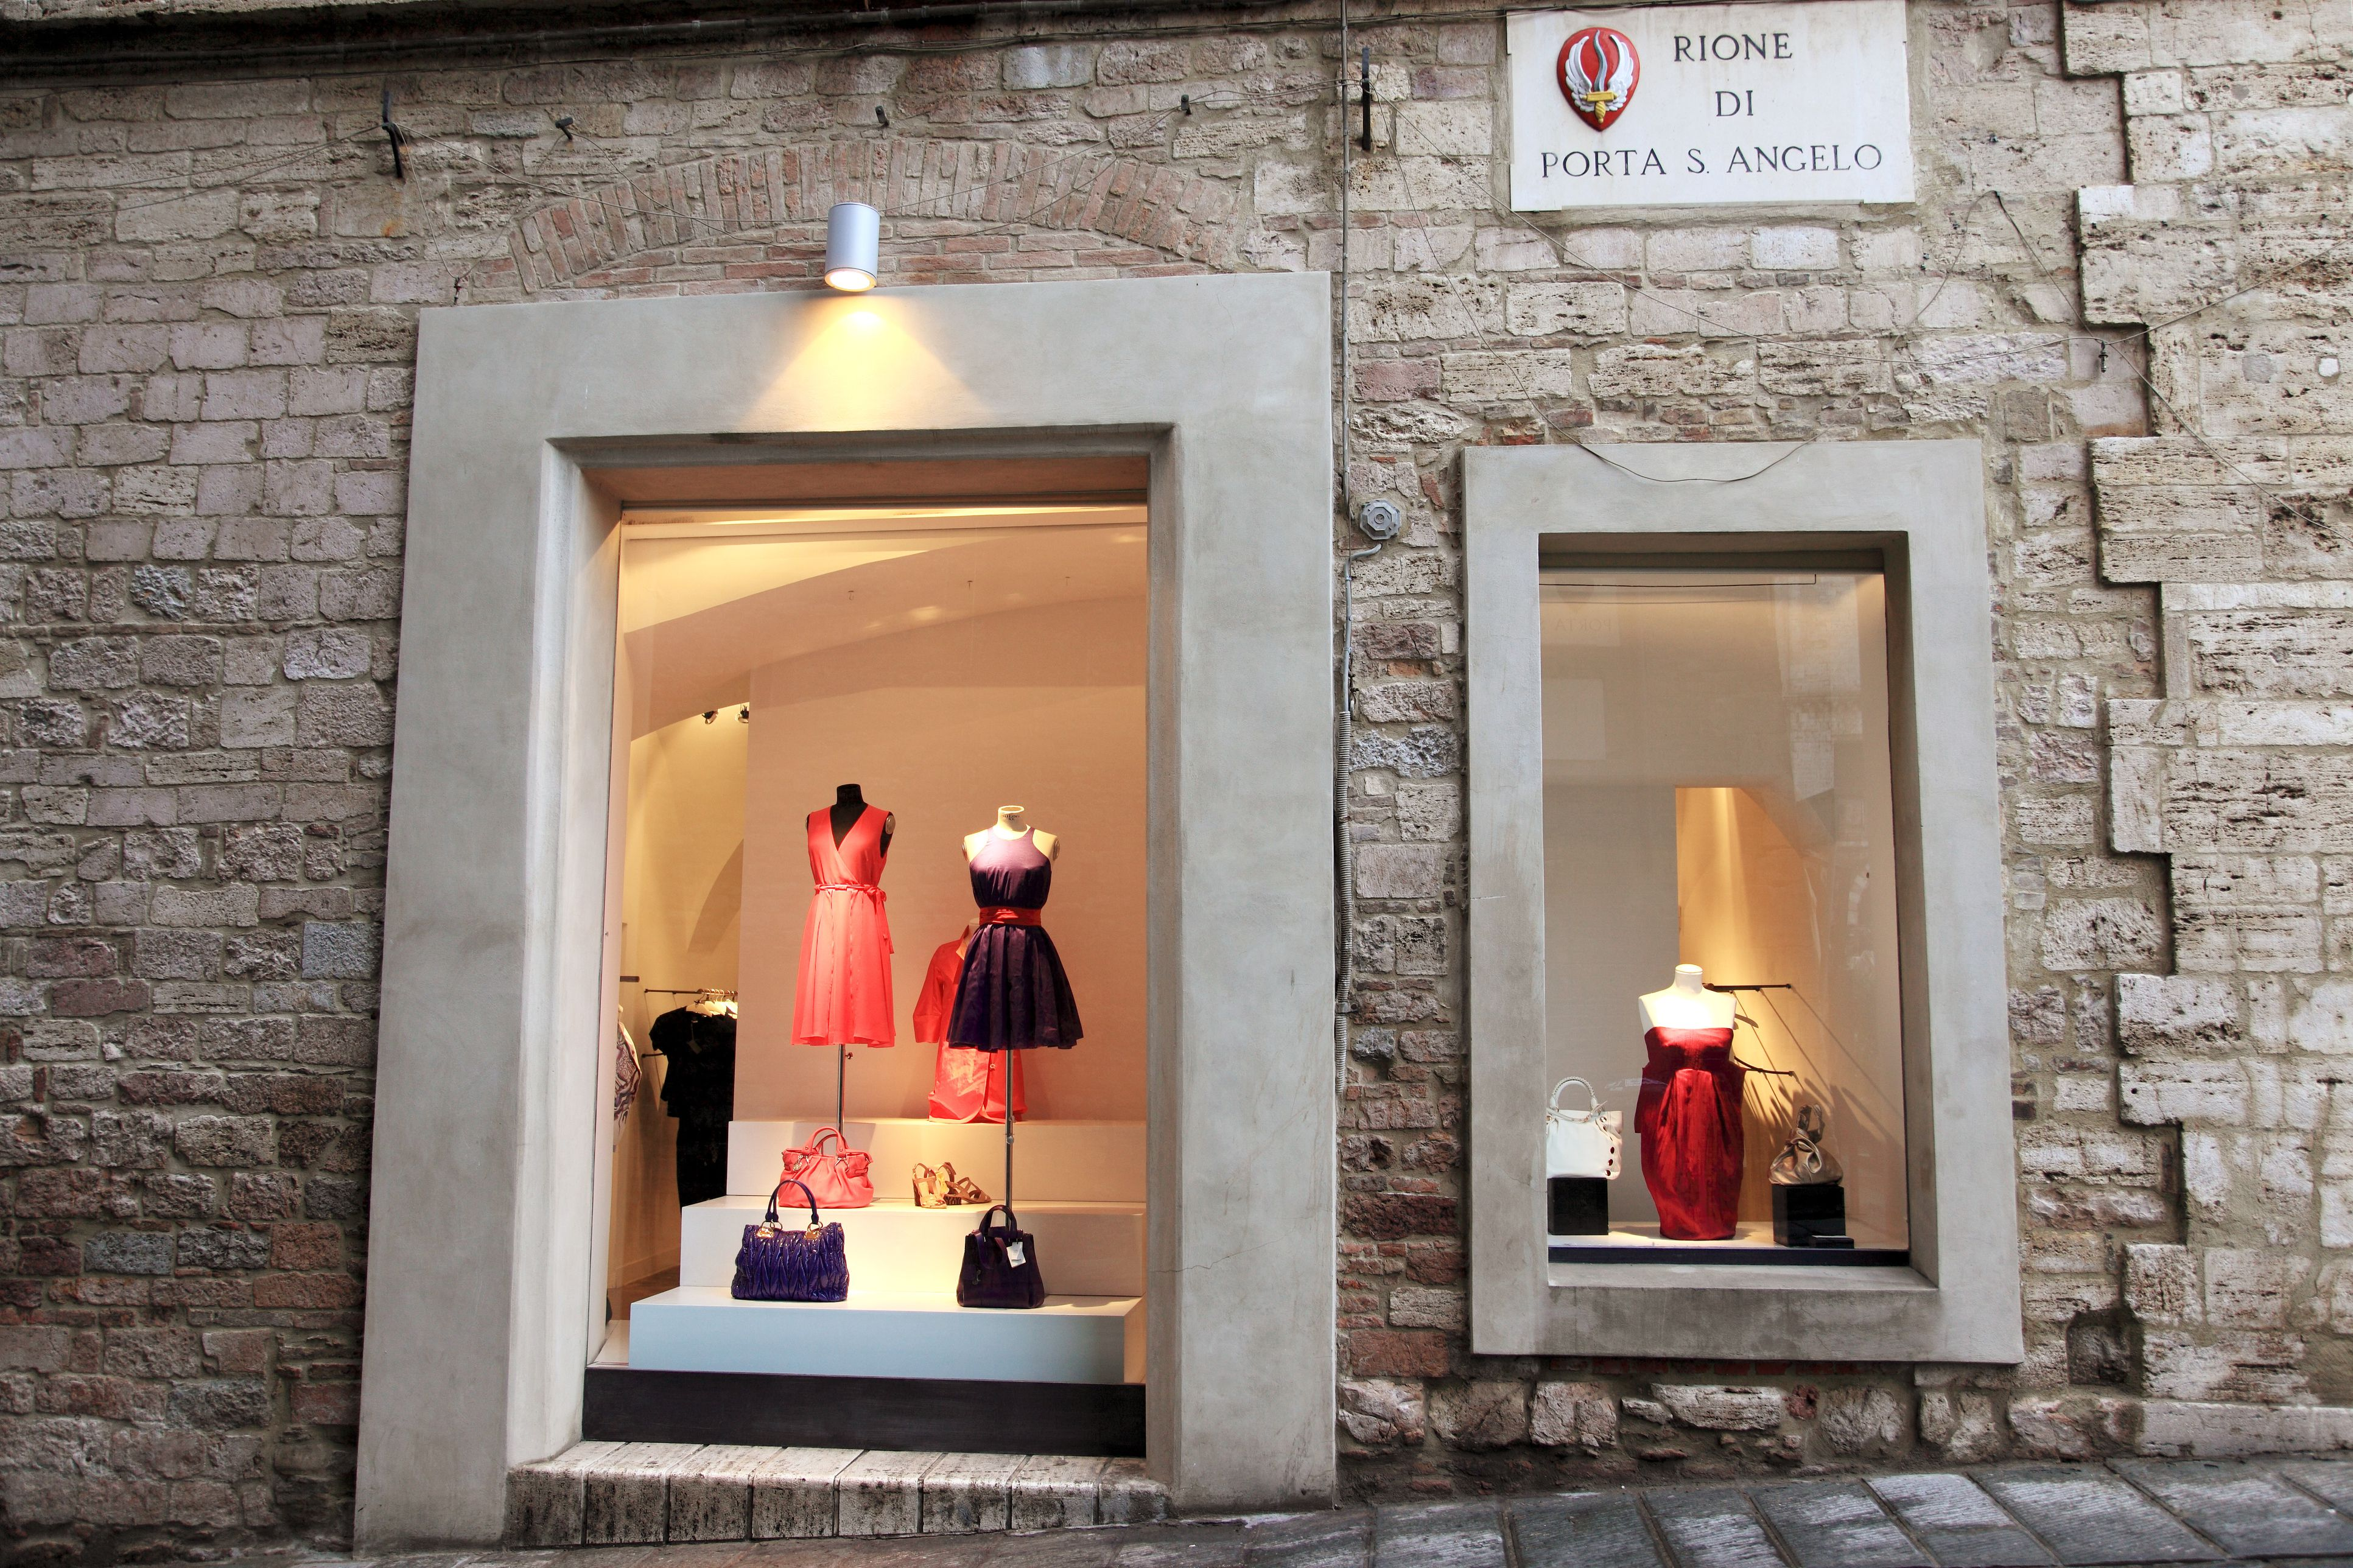 Fashion items and accessories displayed in shop window.